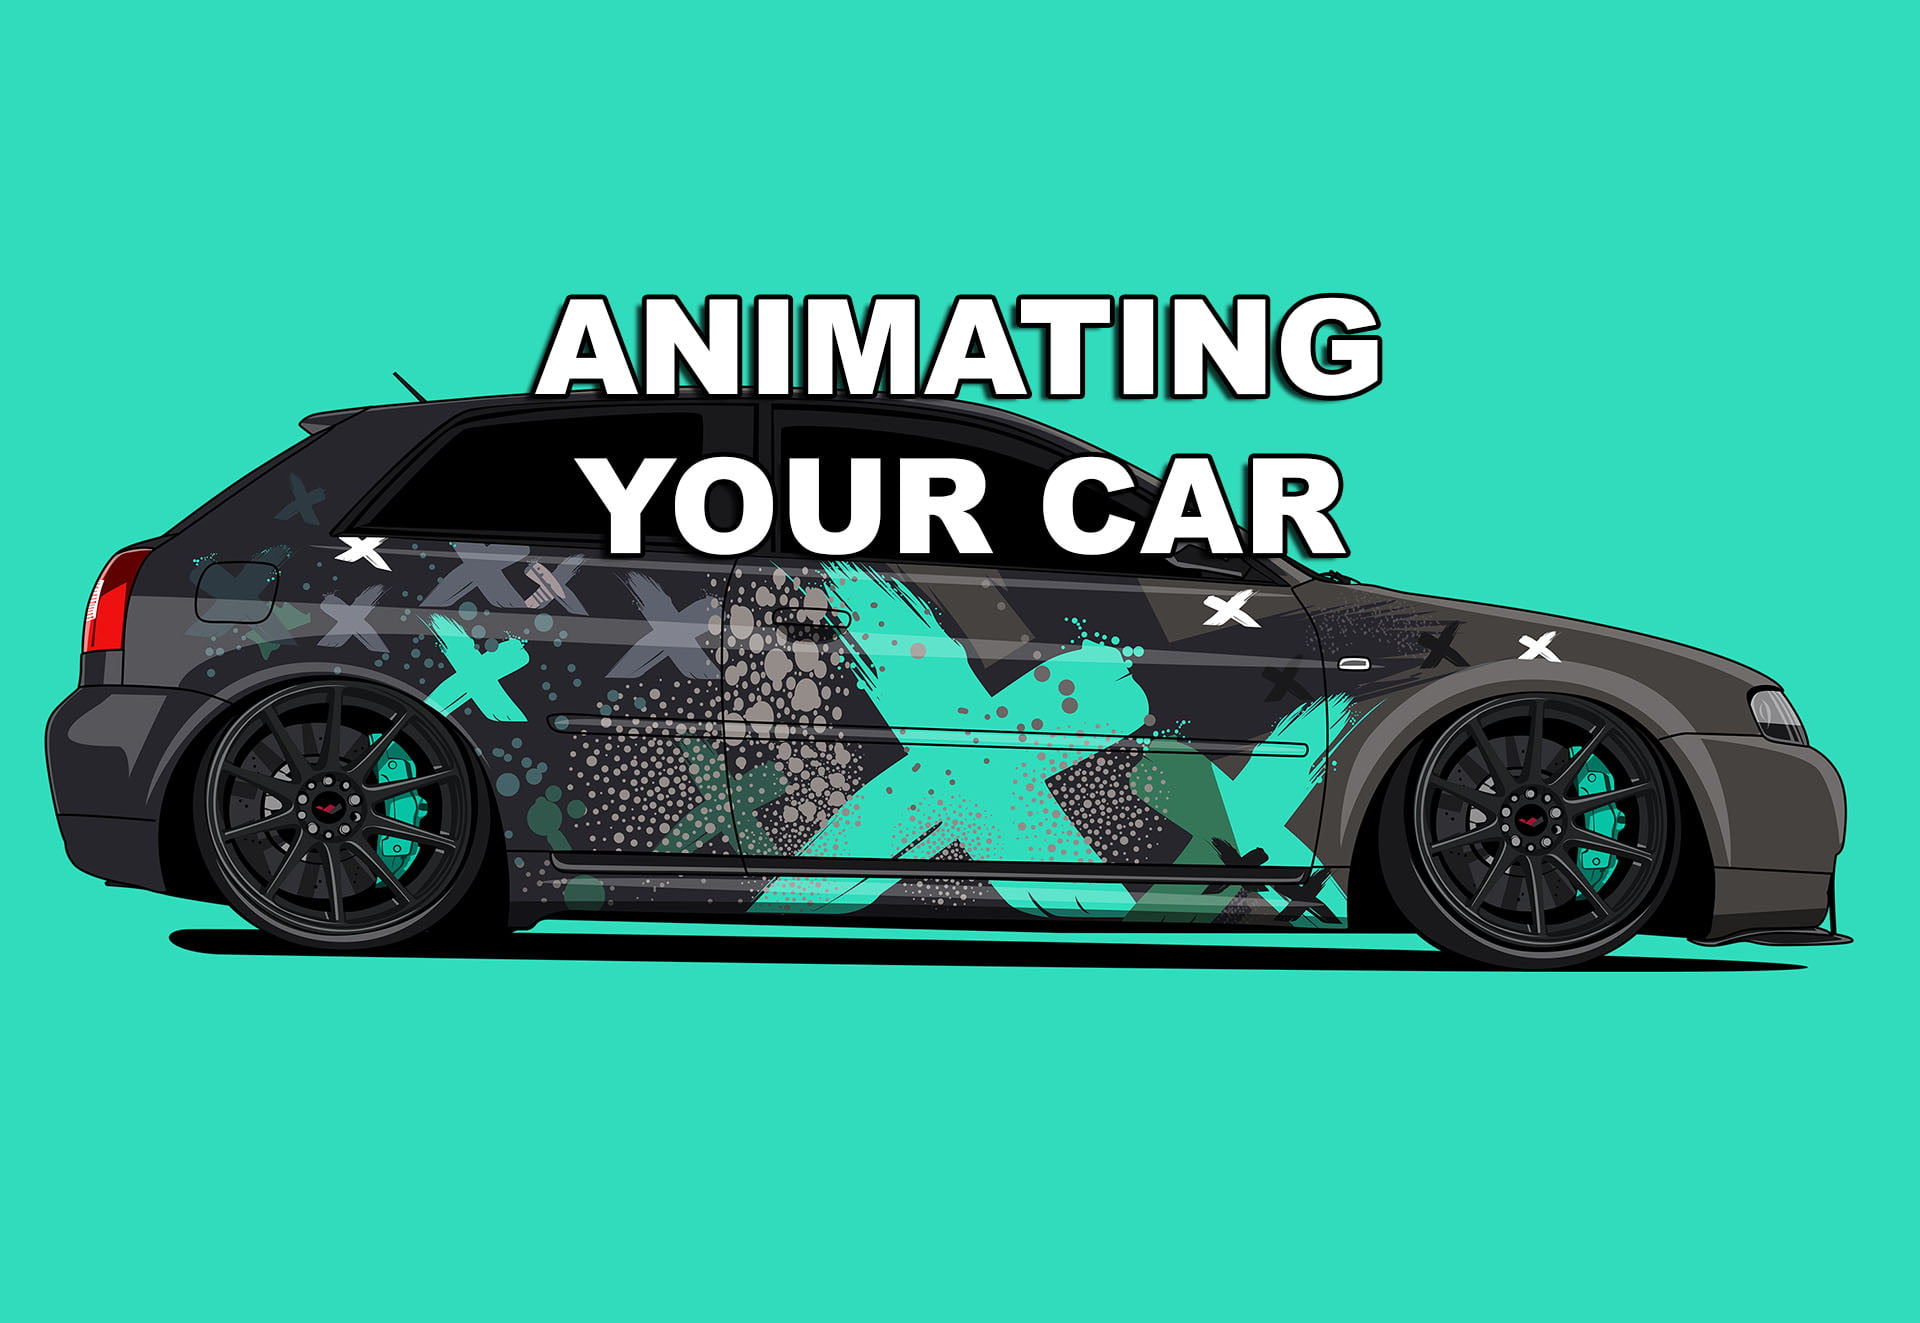 Animating your car